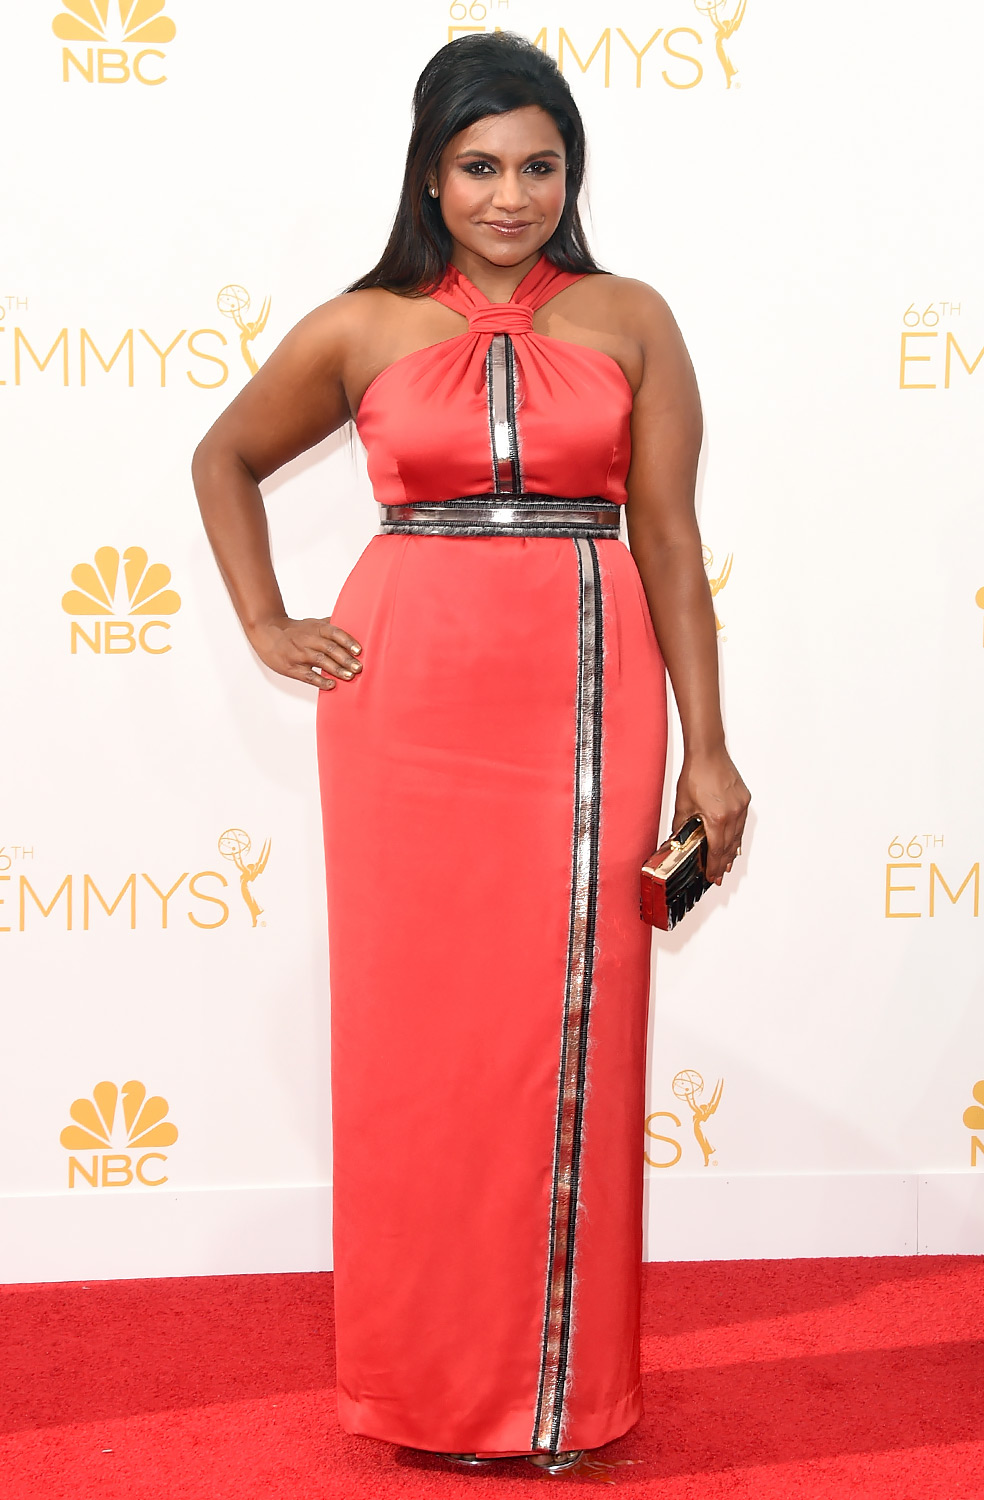 Mindy Kaling in Kenzo Photo: Jason Merritt/GettyImages found on www.usmagazine.com